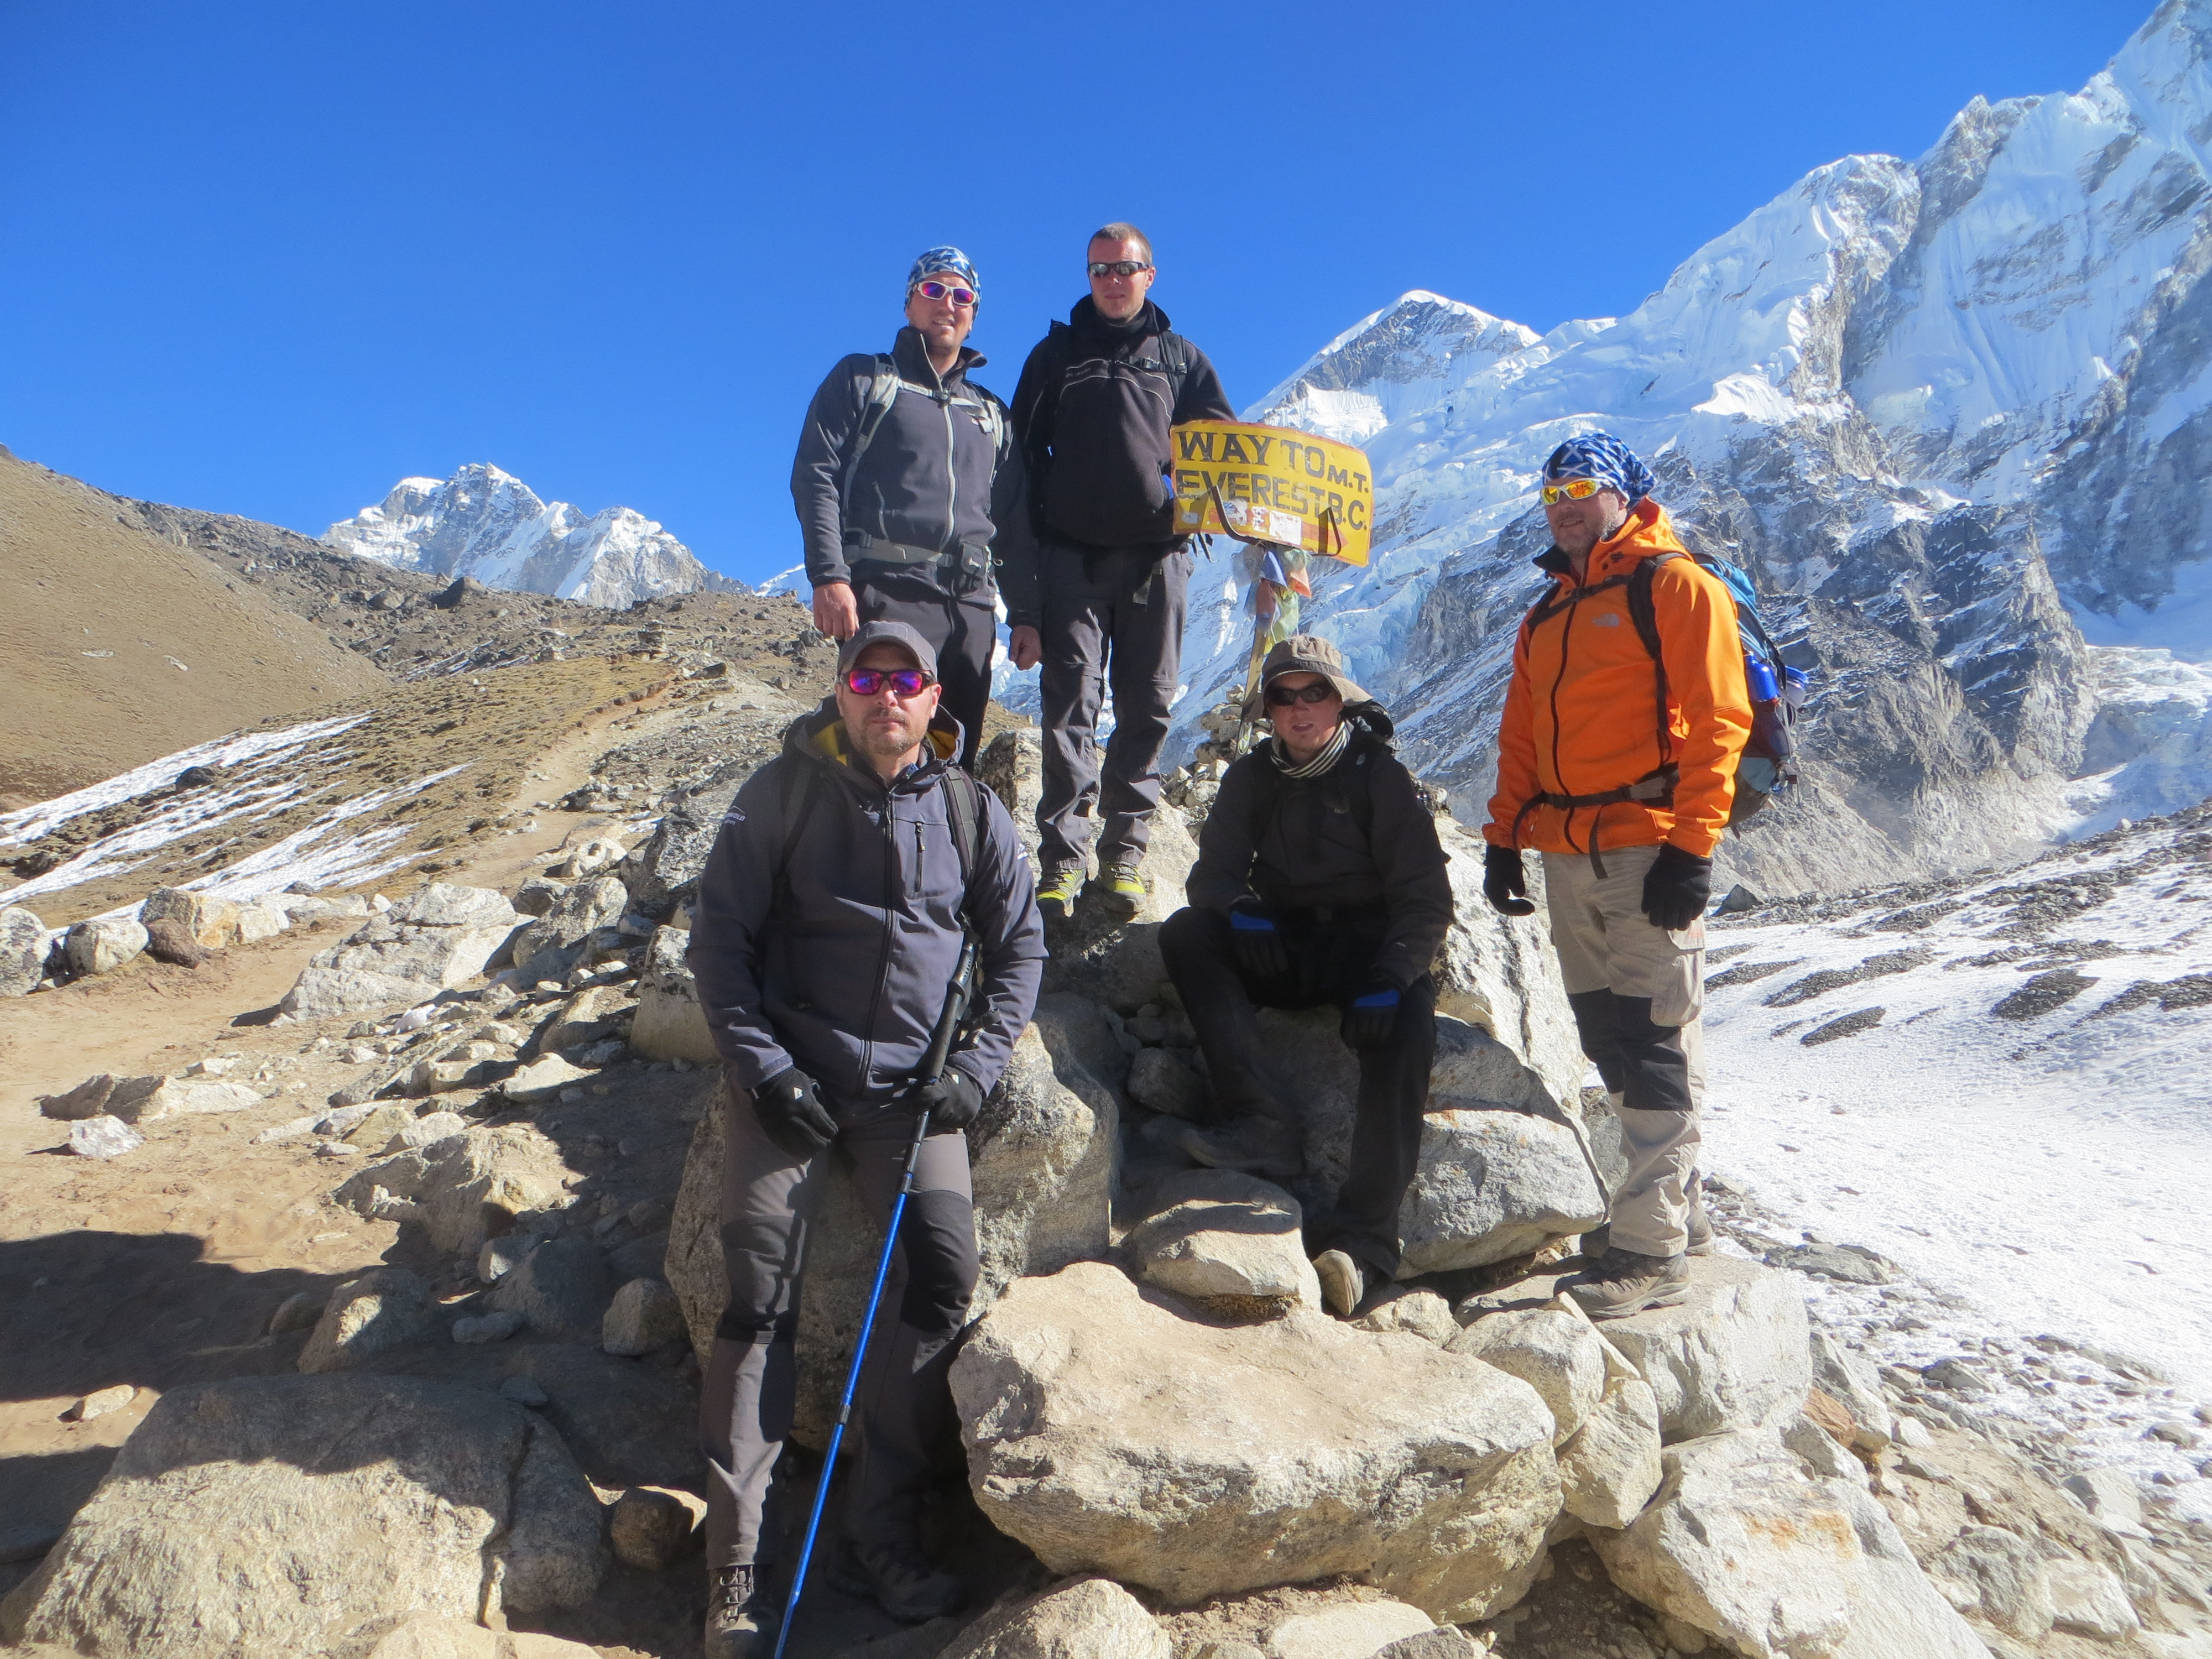 Firefighters raise over £6,000 for Firefighters' Charity with Everest trek